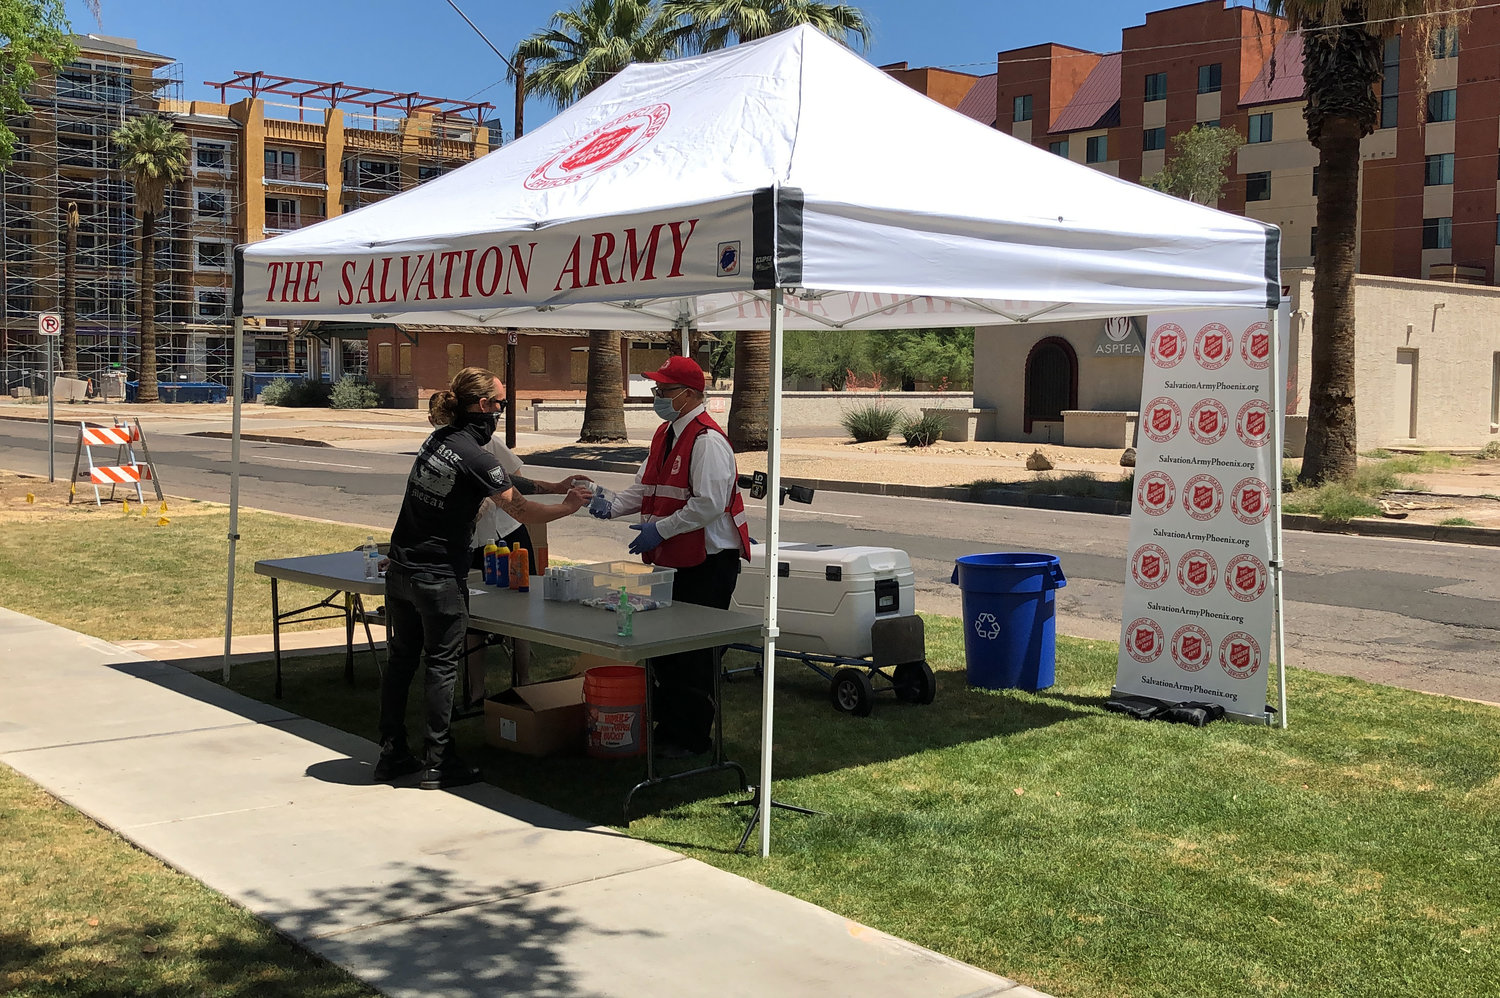 To maximize safety, The Salvation Army's heat relief efforts follow current recommended COVID-19 guidelines from local, state and federal health officials.